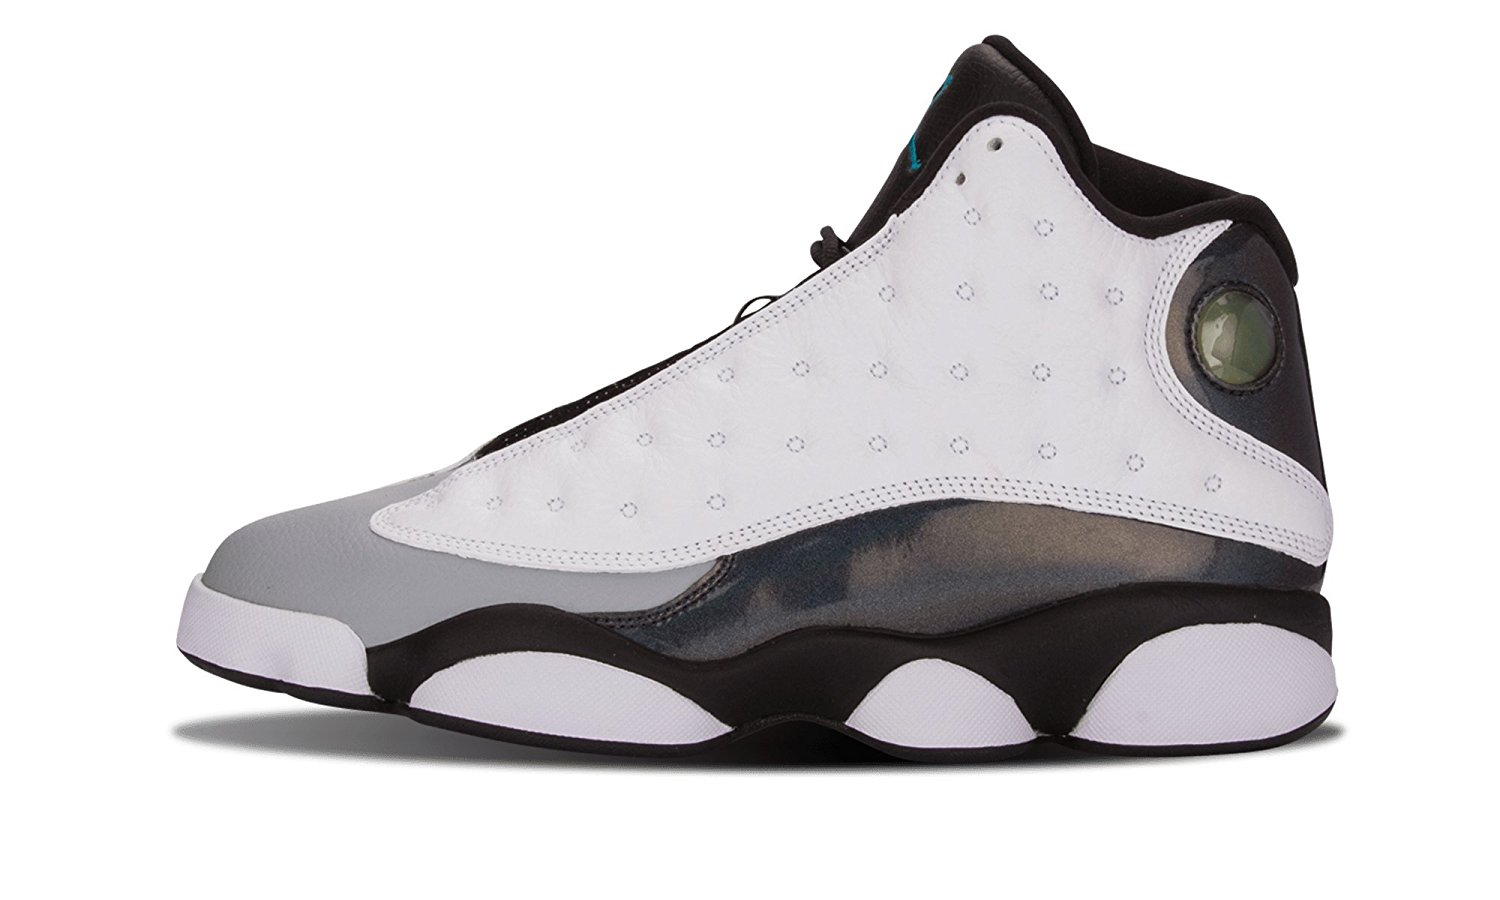 81ec1ba21aa Get Quotations · Air Jordan 13 Retro - 12.5